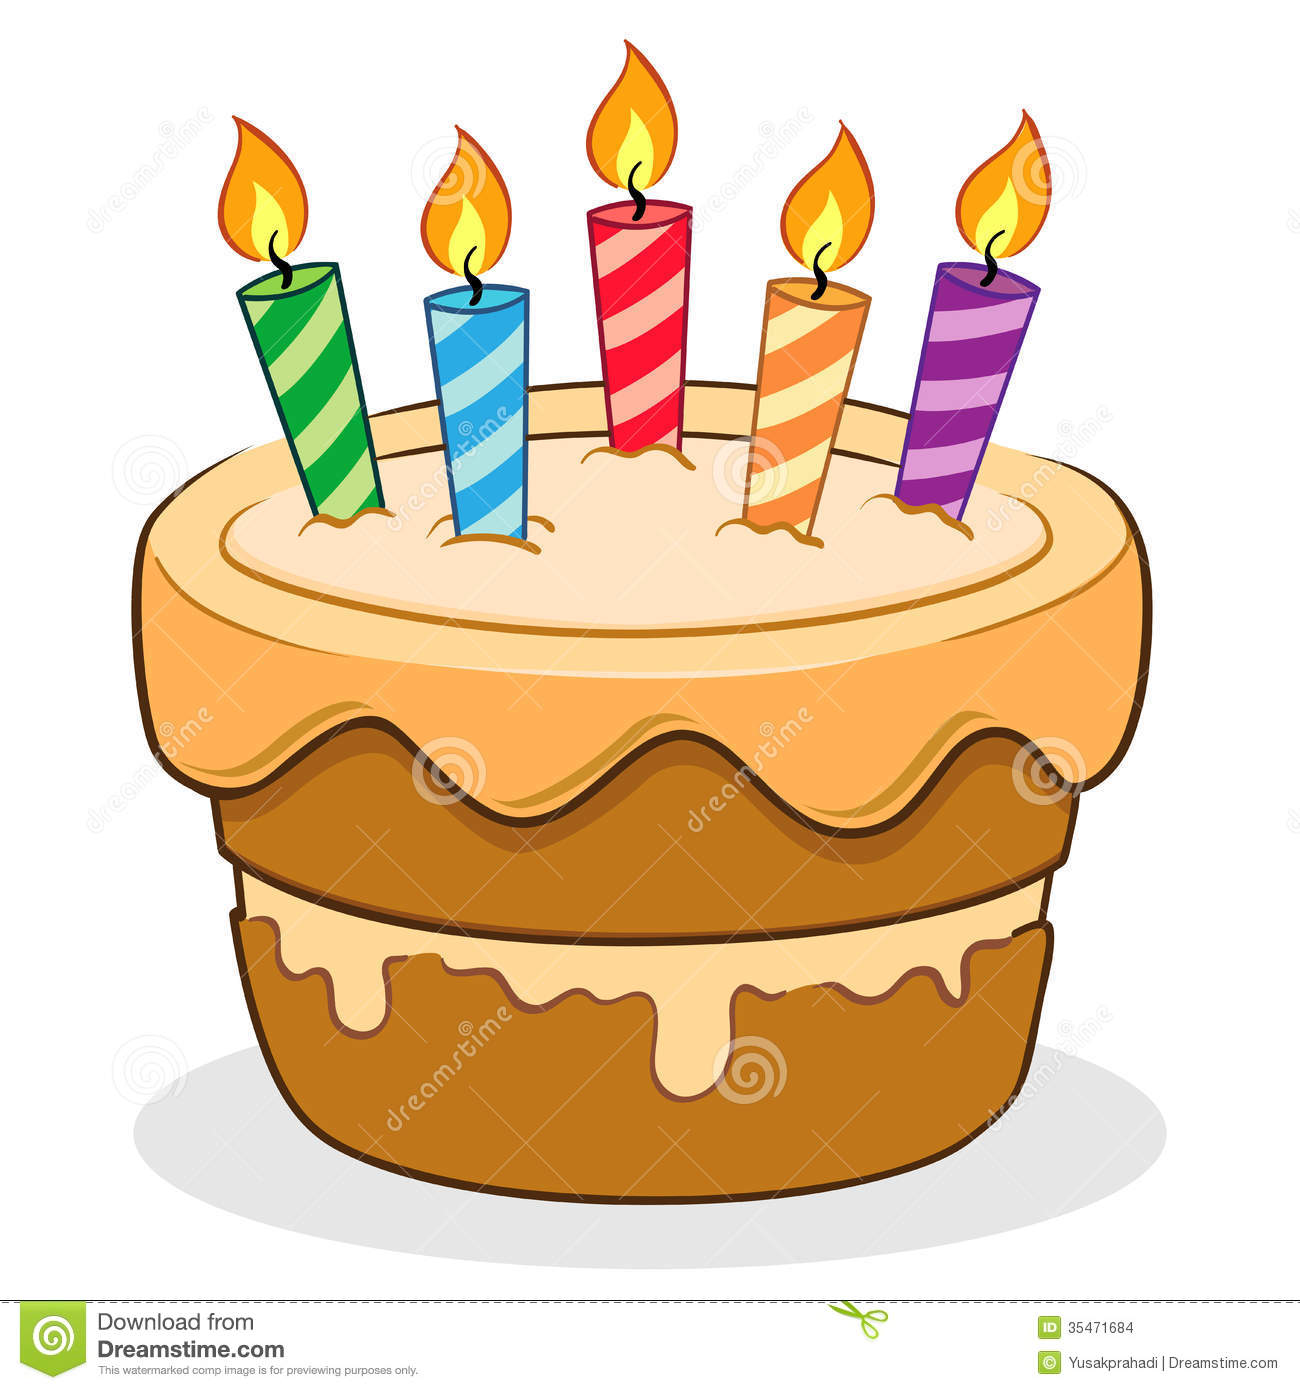 Sensational Birthday Cake Stock Vector Illustration Of Delicious 35471684 Personalised Birthday Cards Veneteletsinfo